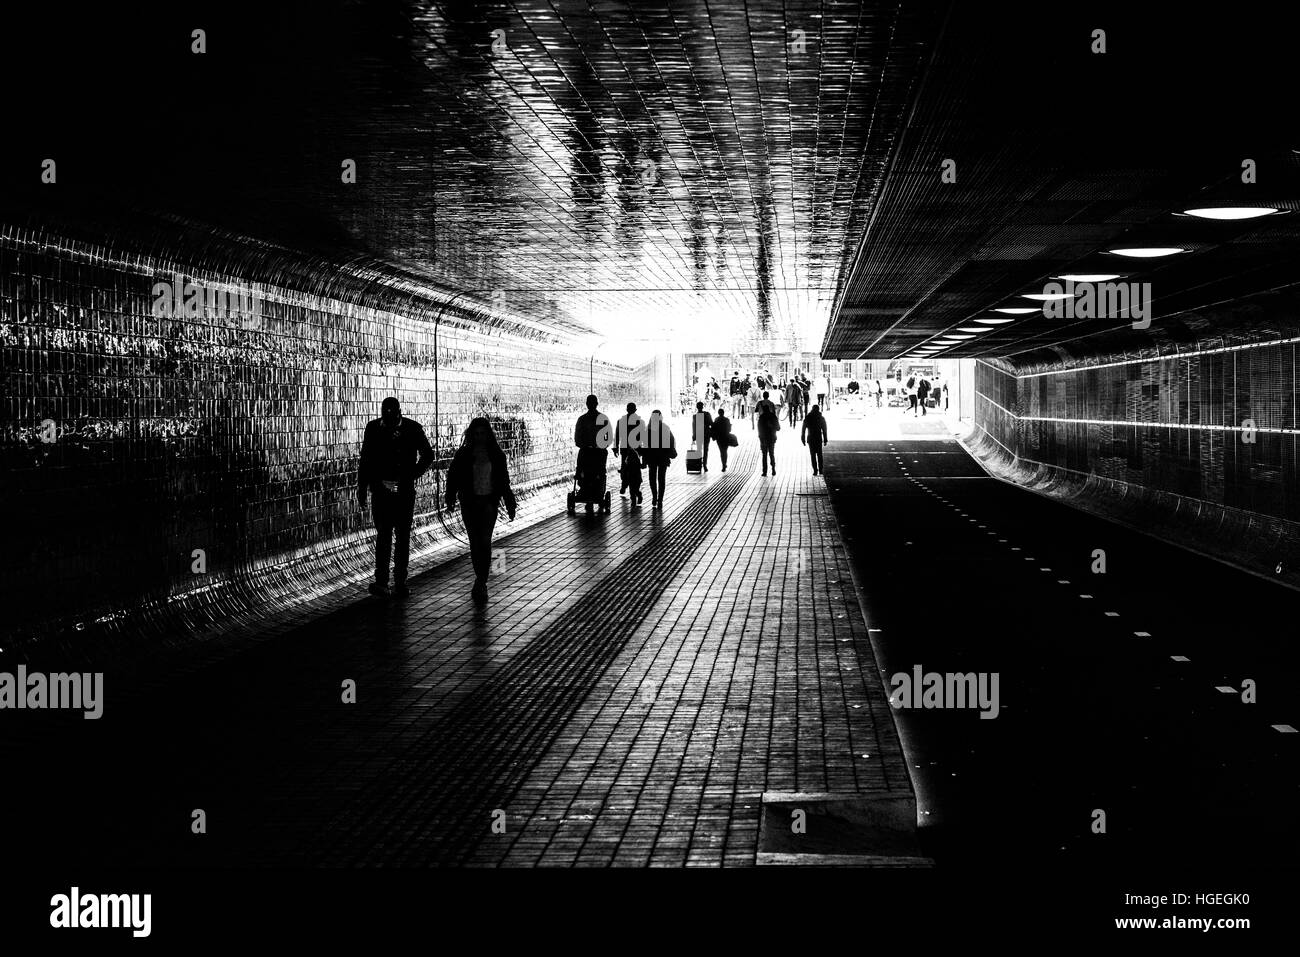 Amsterdam Central Station tunnel with people walking - Stock Image